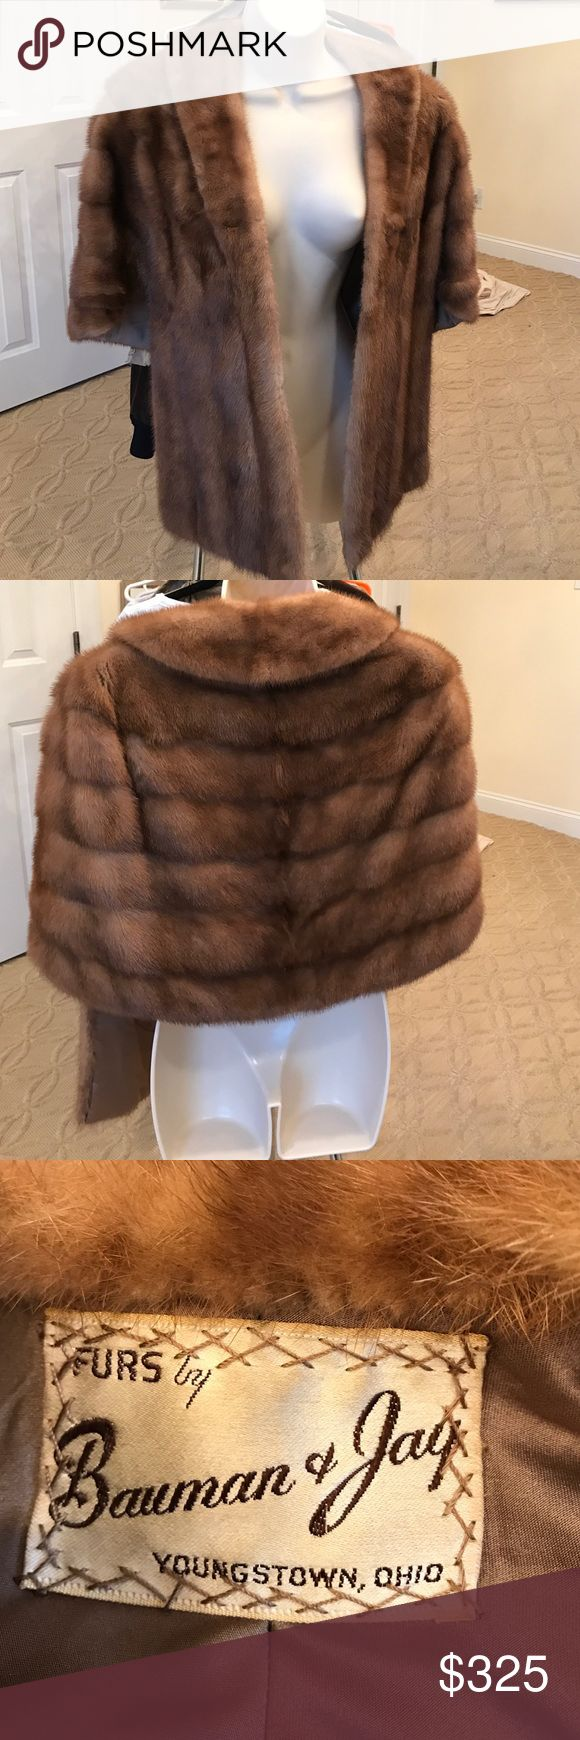 ❤️PRICED TO SELL. Gorgeous mink stole ❤️PRICED TO SELL. Gorgeous vintage mink stole. Jackets & Coats Capes